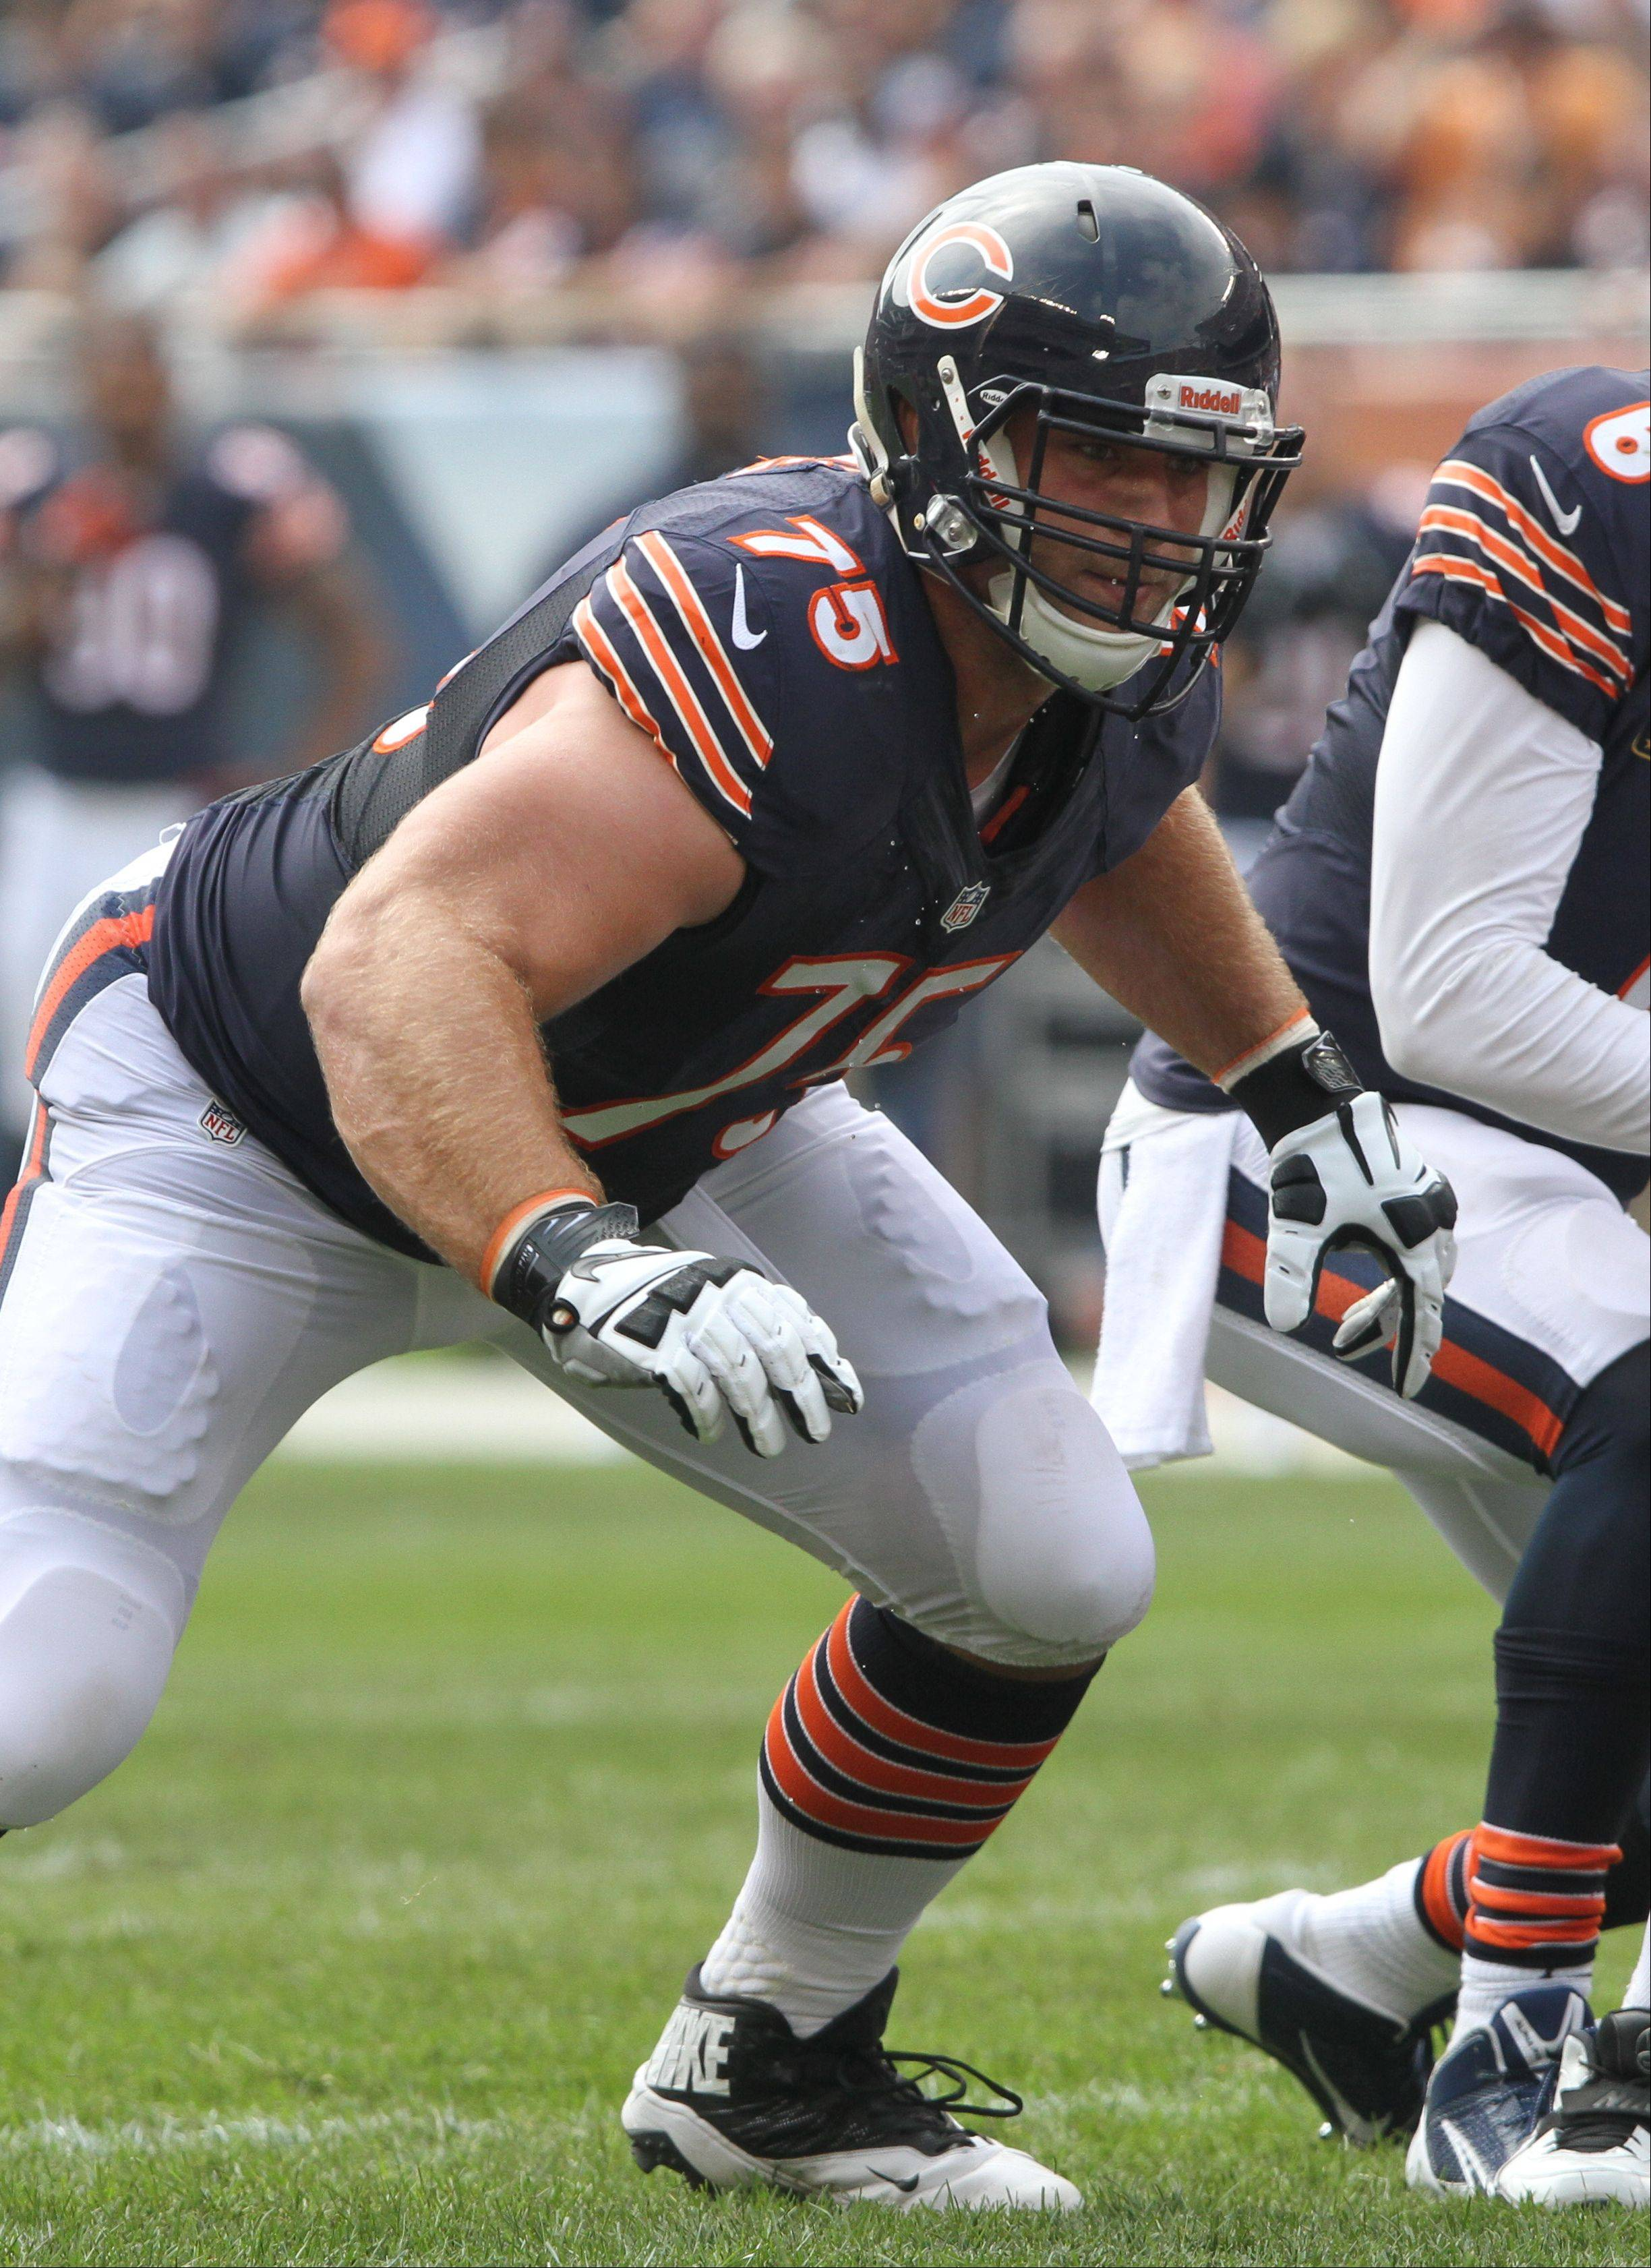 Bears offensive guard Kyle Long blocks during their opening day game against the Cincinnati Bengals Sunday at Soldier Field in Chicago.